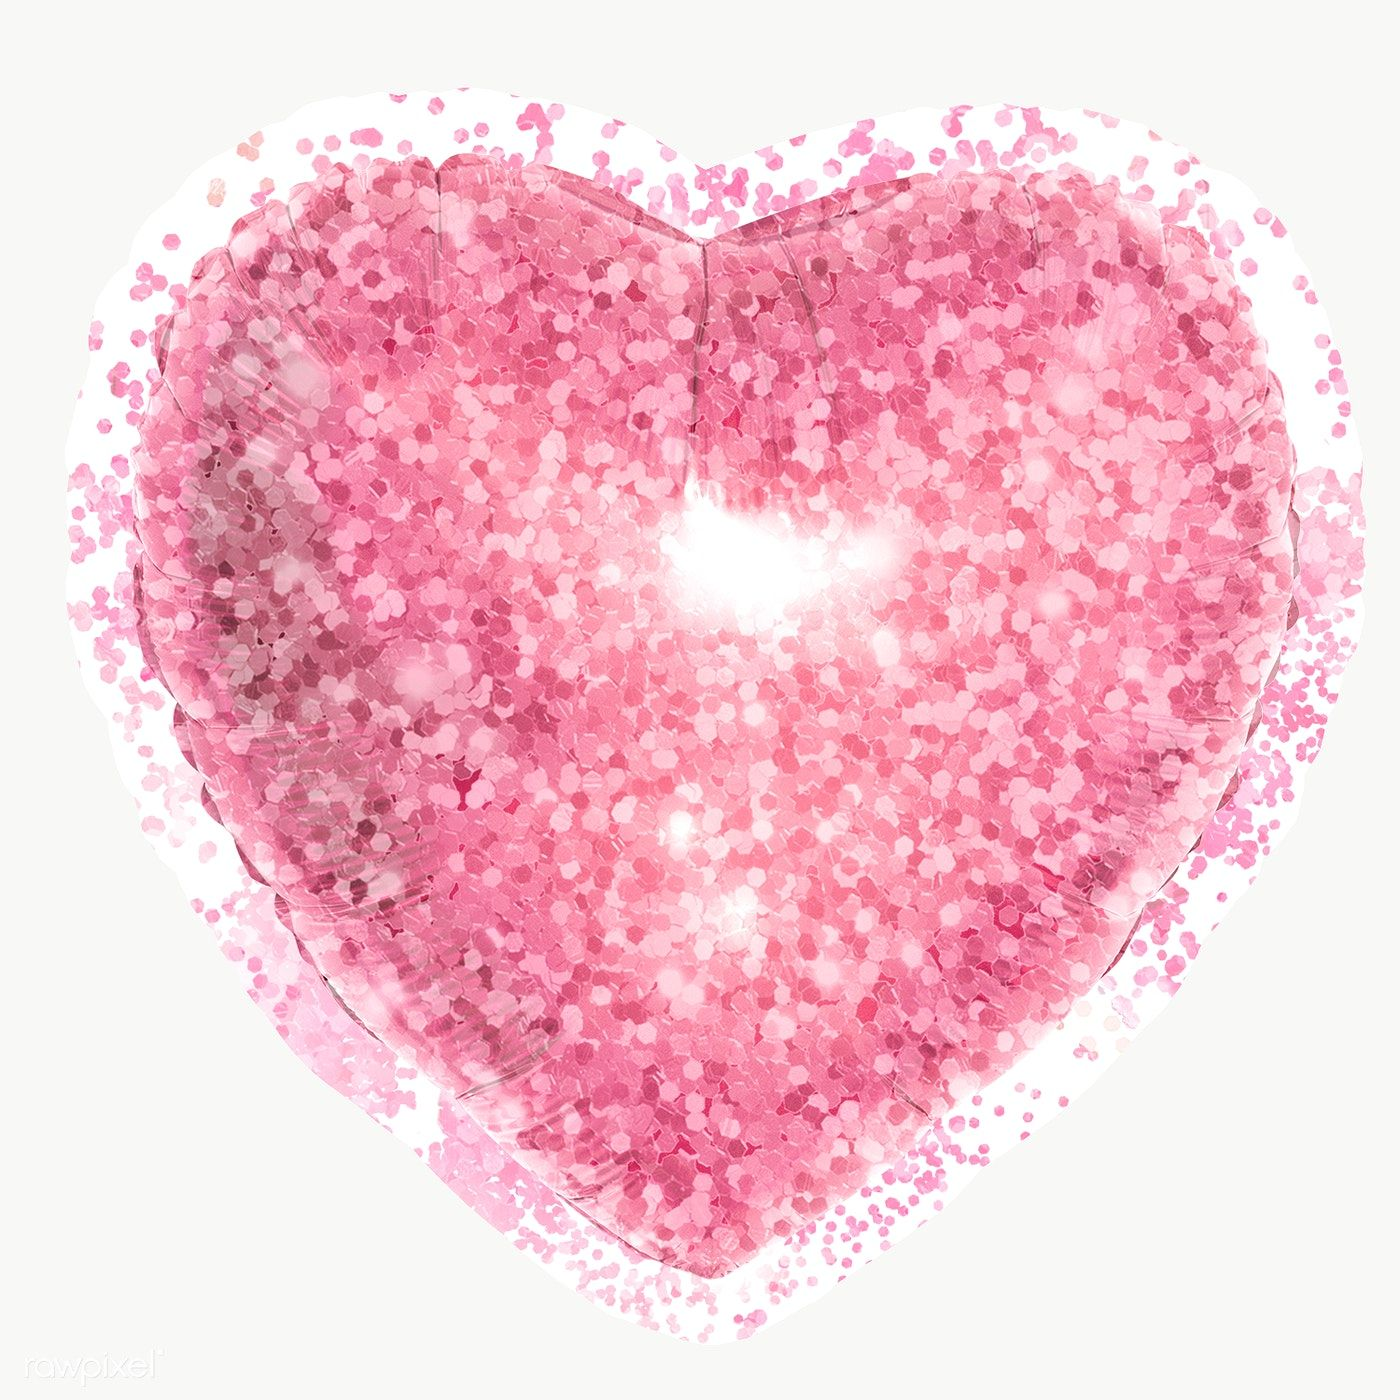 Glittery Pink Heart Sticker Overlay With A White Border Design Element Free Image By Rawpixel Com Donlaya Heart Stickers Pink Heart Pink Aesthetic